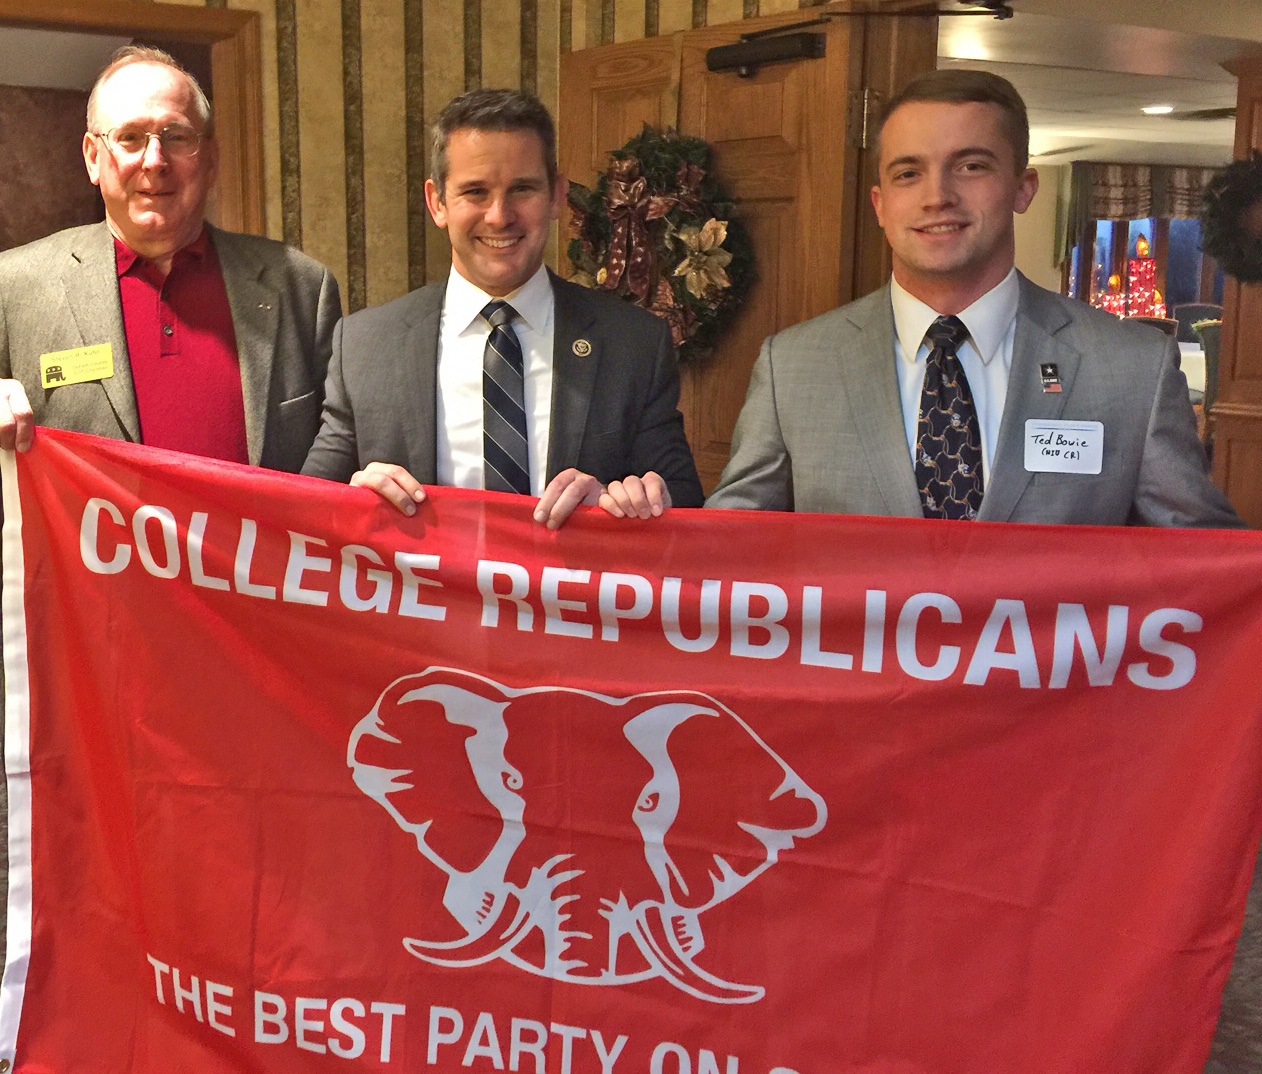 Chairman Kuhn with Congessman Kinzinger and NIU CR President Ted Bowie